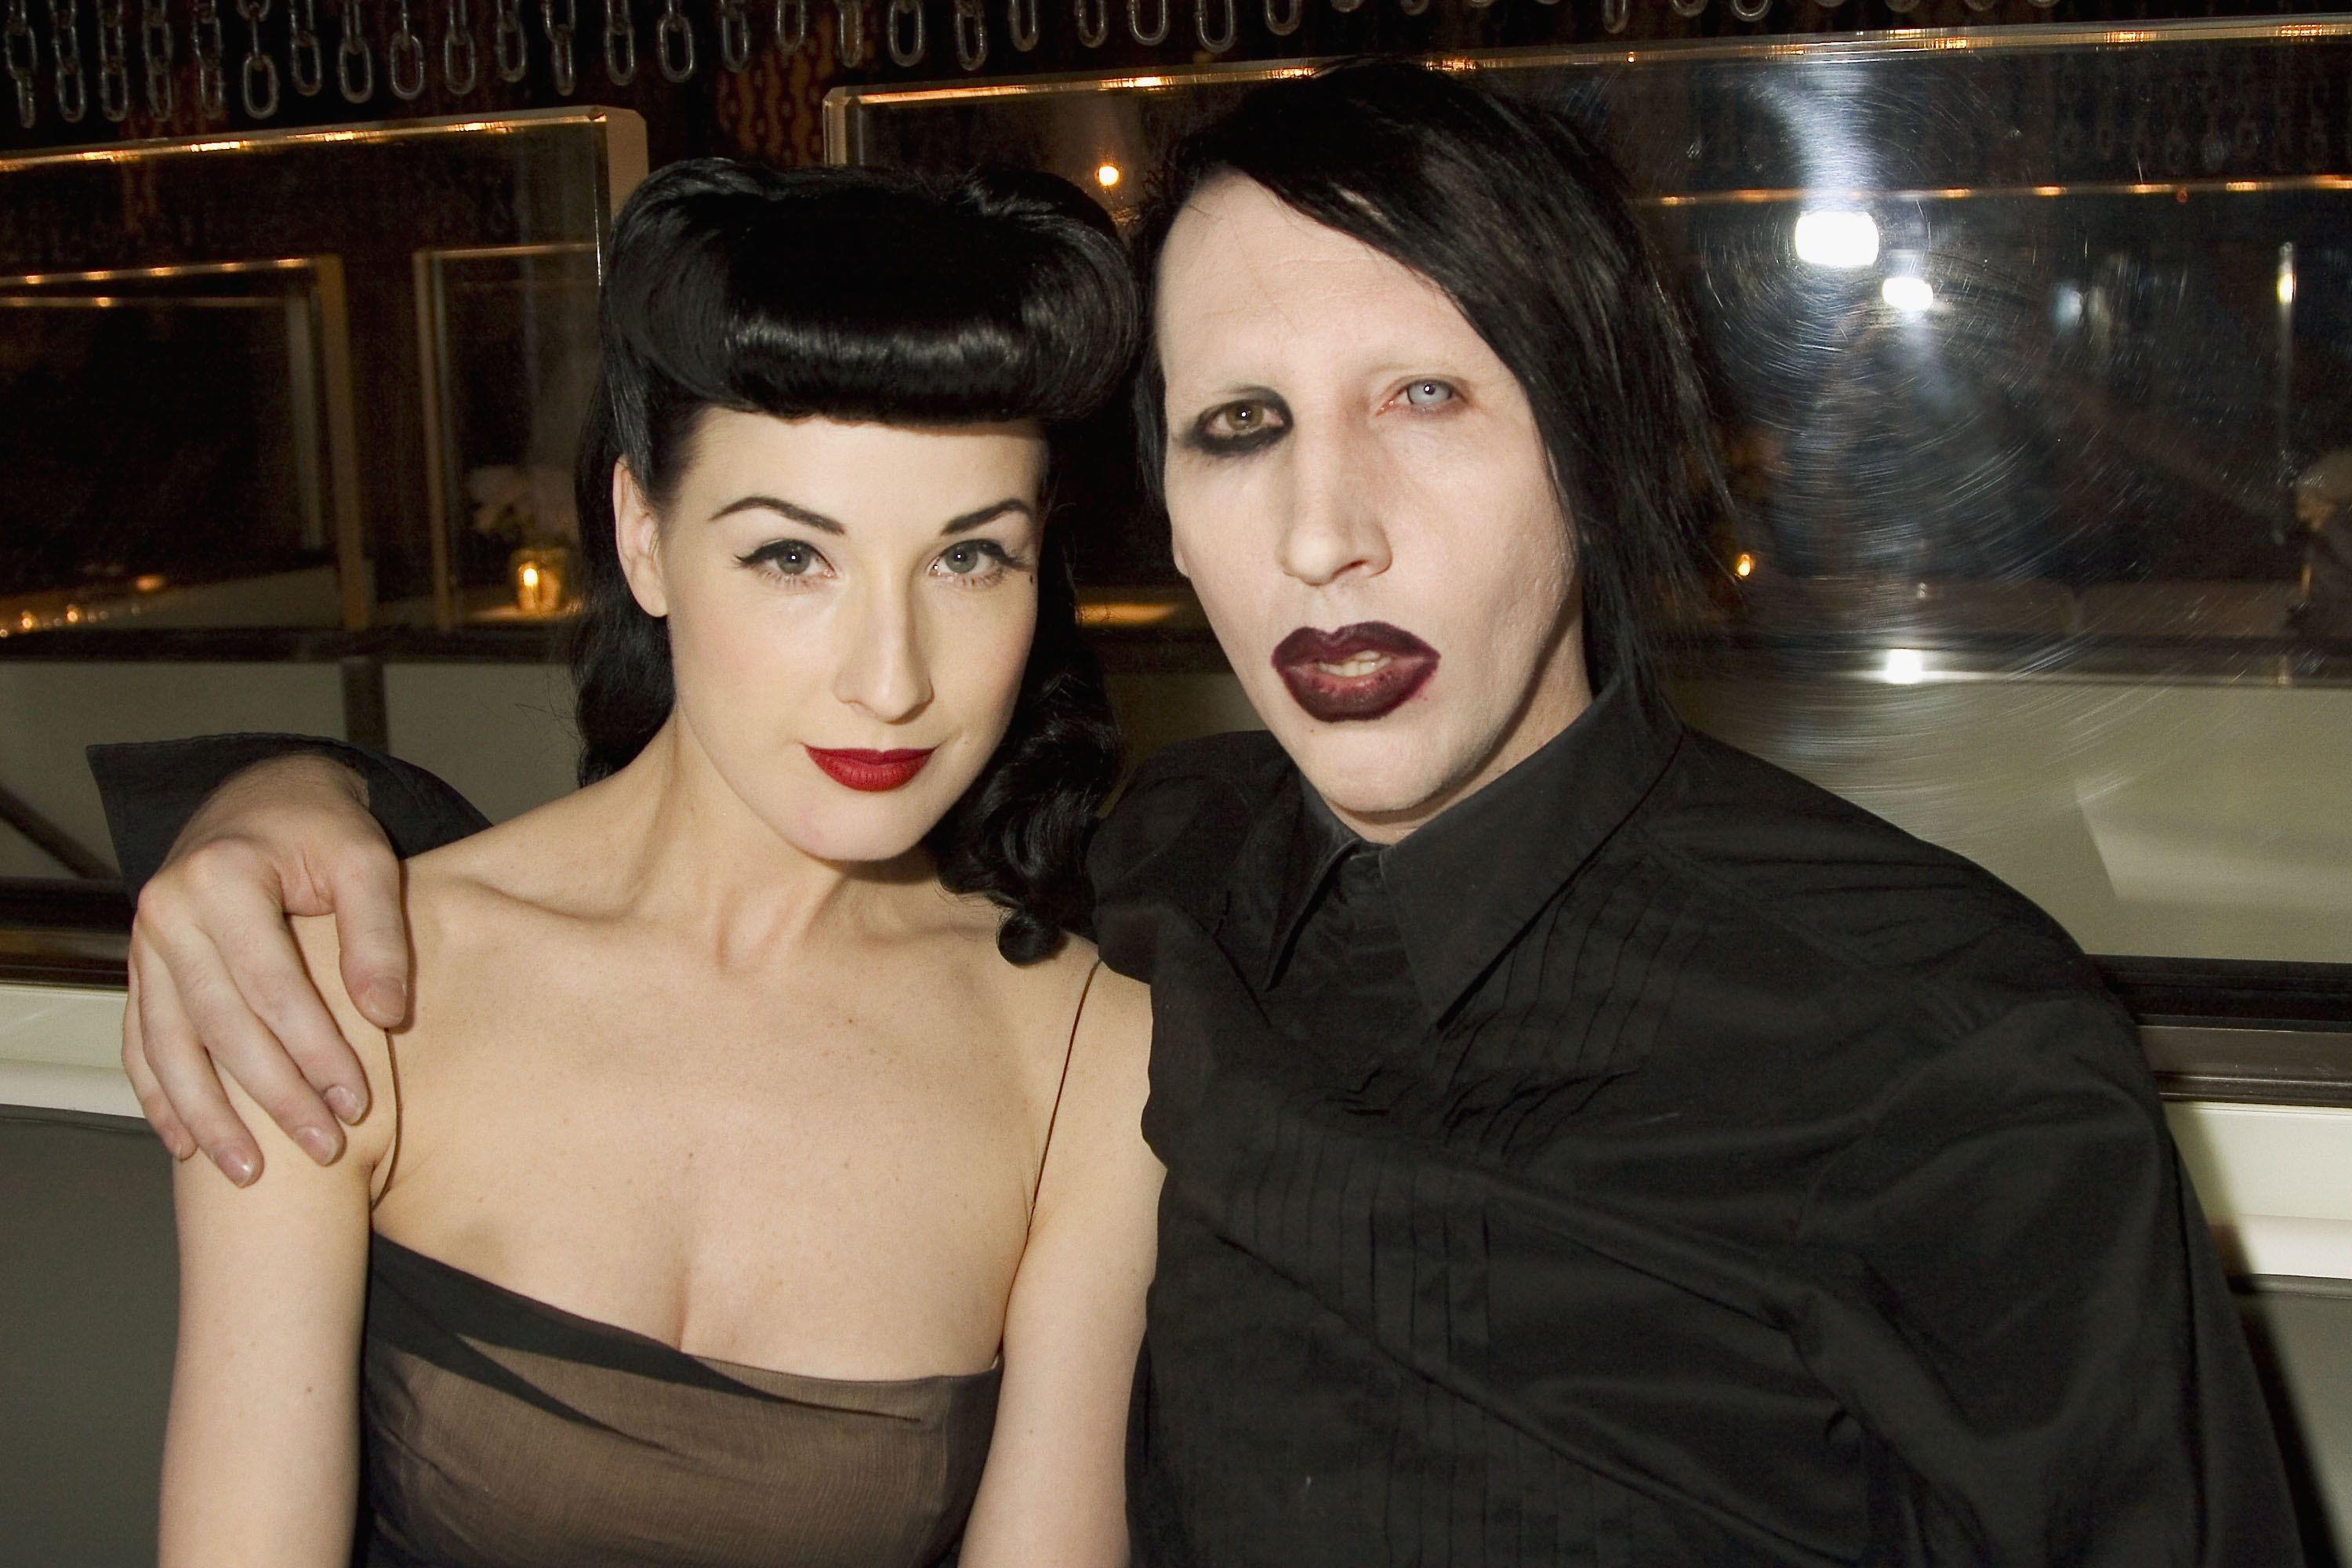 Dita Von Teese and Marilyn Manson at the opening of MR CHOW Tribeca on May 4, 2006, in New York City | Photo: Astrid Stawiarz/Getty Images